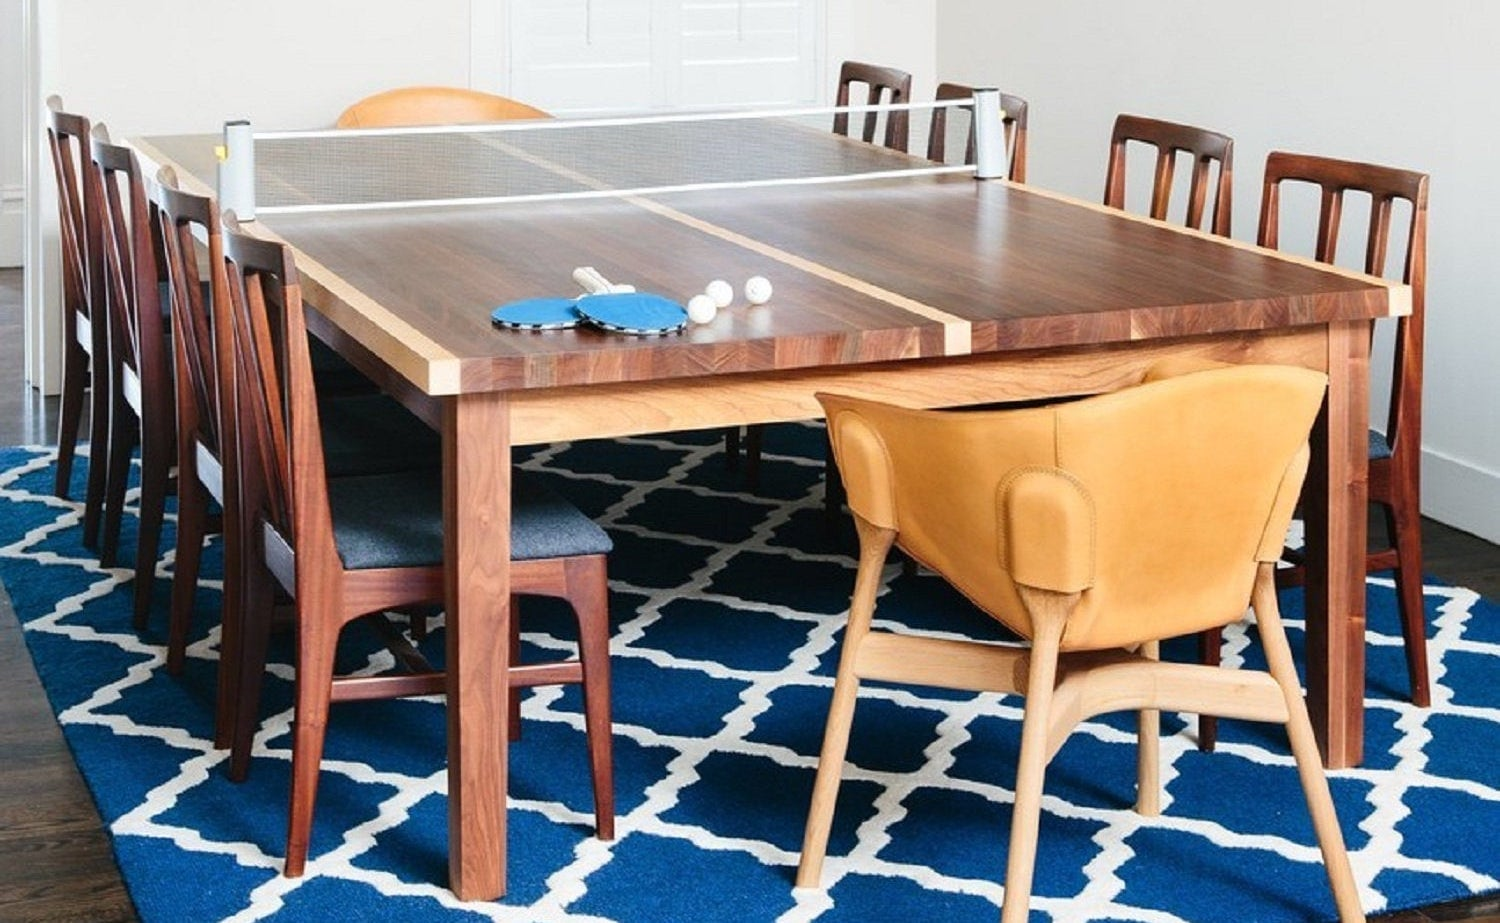 Winston Ping Pong Dining Table adds a touch of sporty fun to mealtime